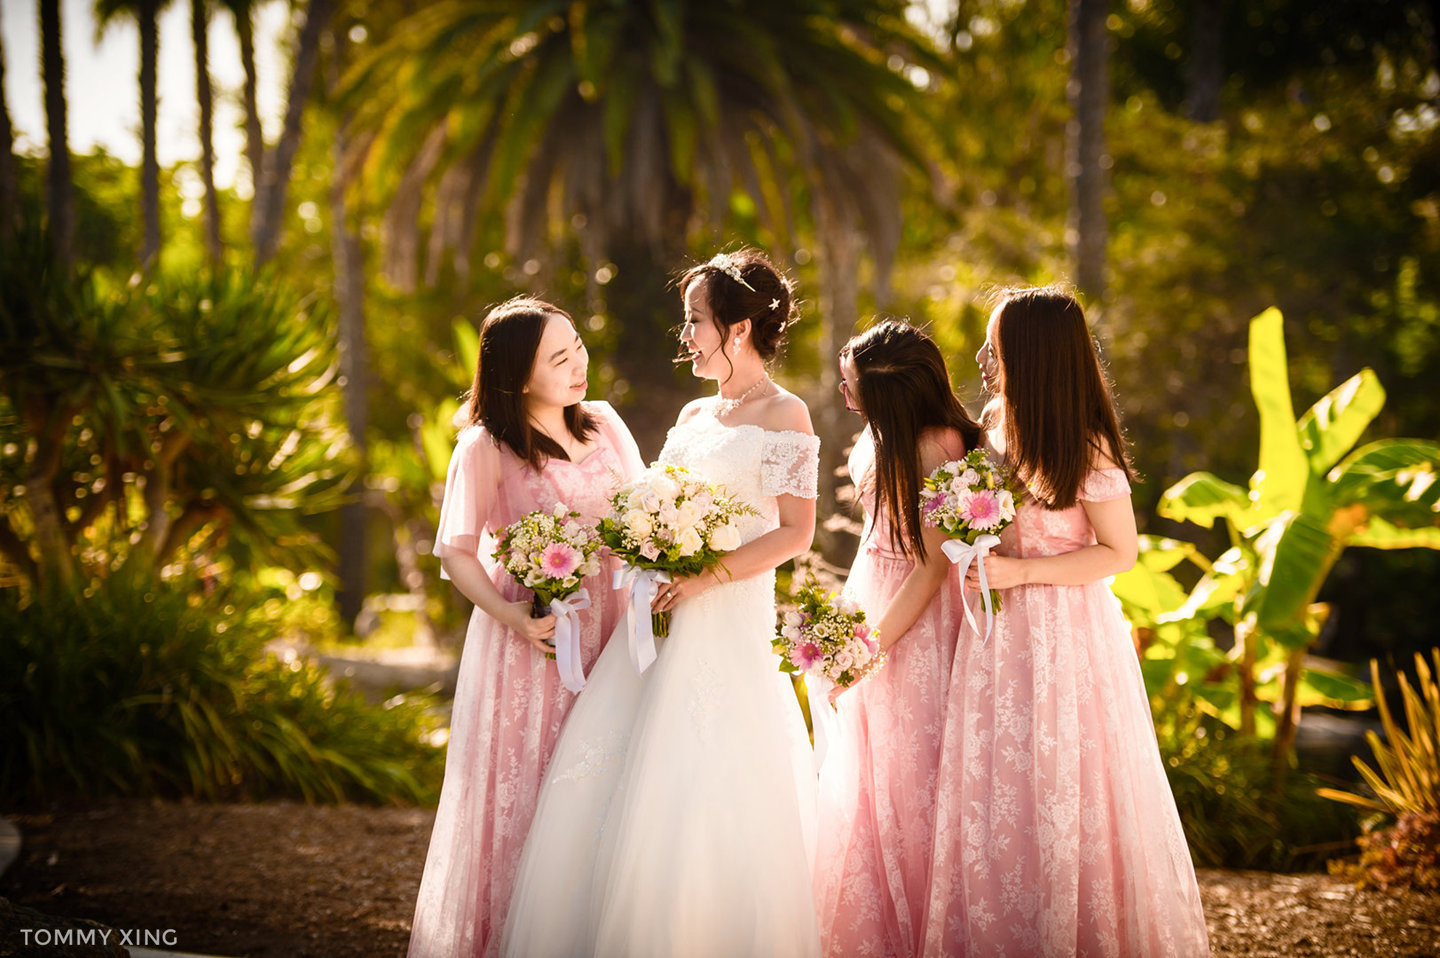 Paradise Point Resort Wedding Xiaolu & Bin San Diego 圣地亚哥婚礼摄影跟拍 Tommy Xing Photography 洛杉矶婚礼婚纱照摄影师 071.jpg